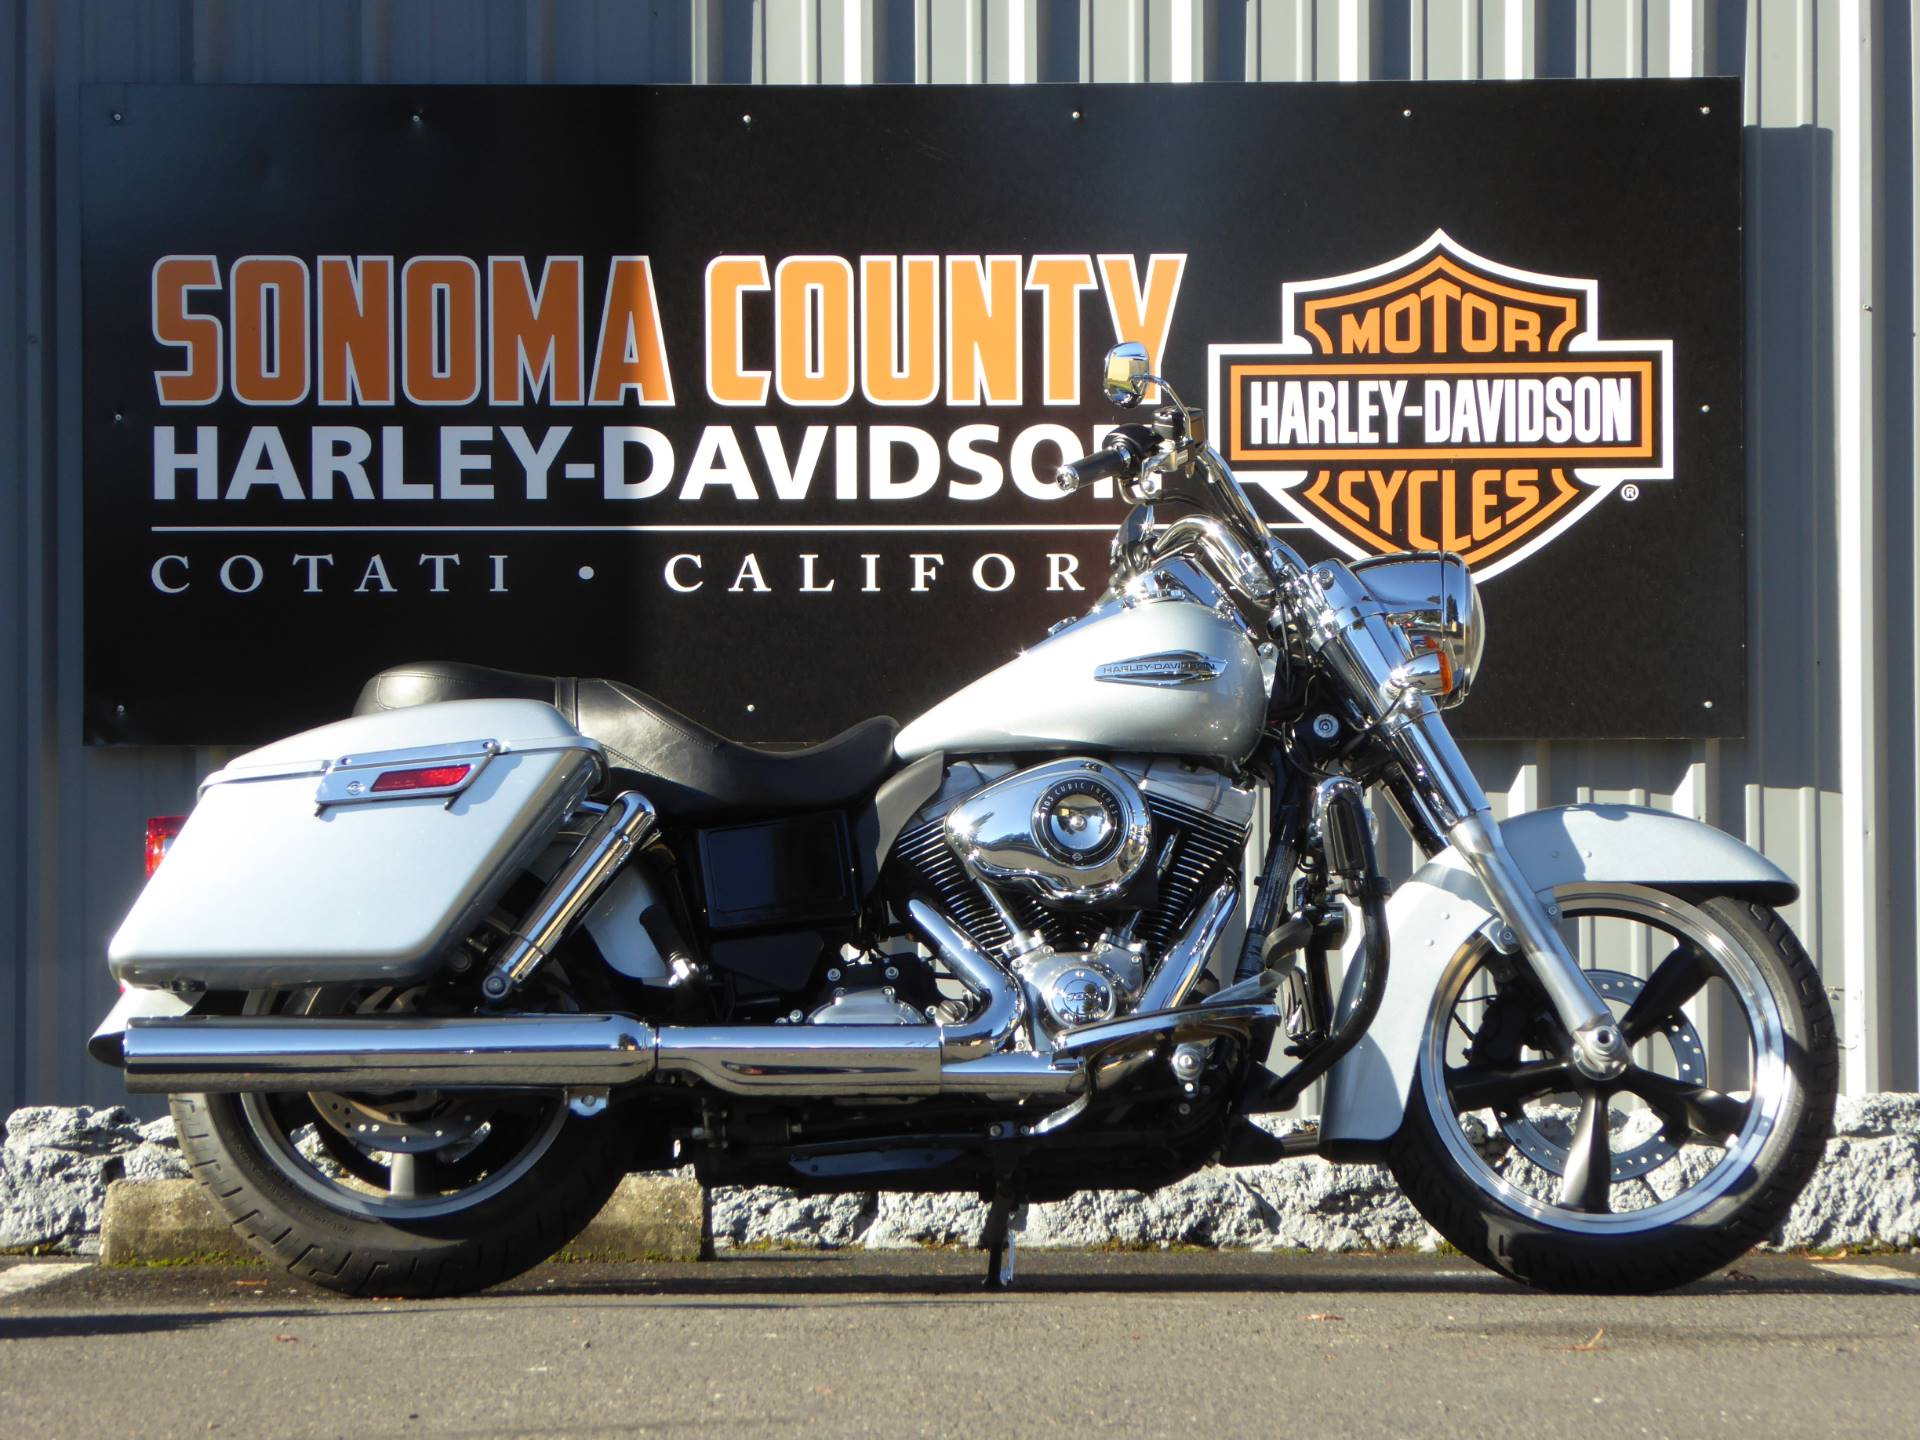 2012 Harley-Davidson DYNA SWITCHBACK in Cotati, California - Photo 1